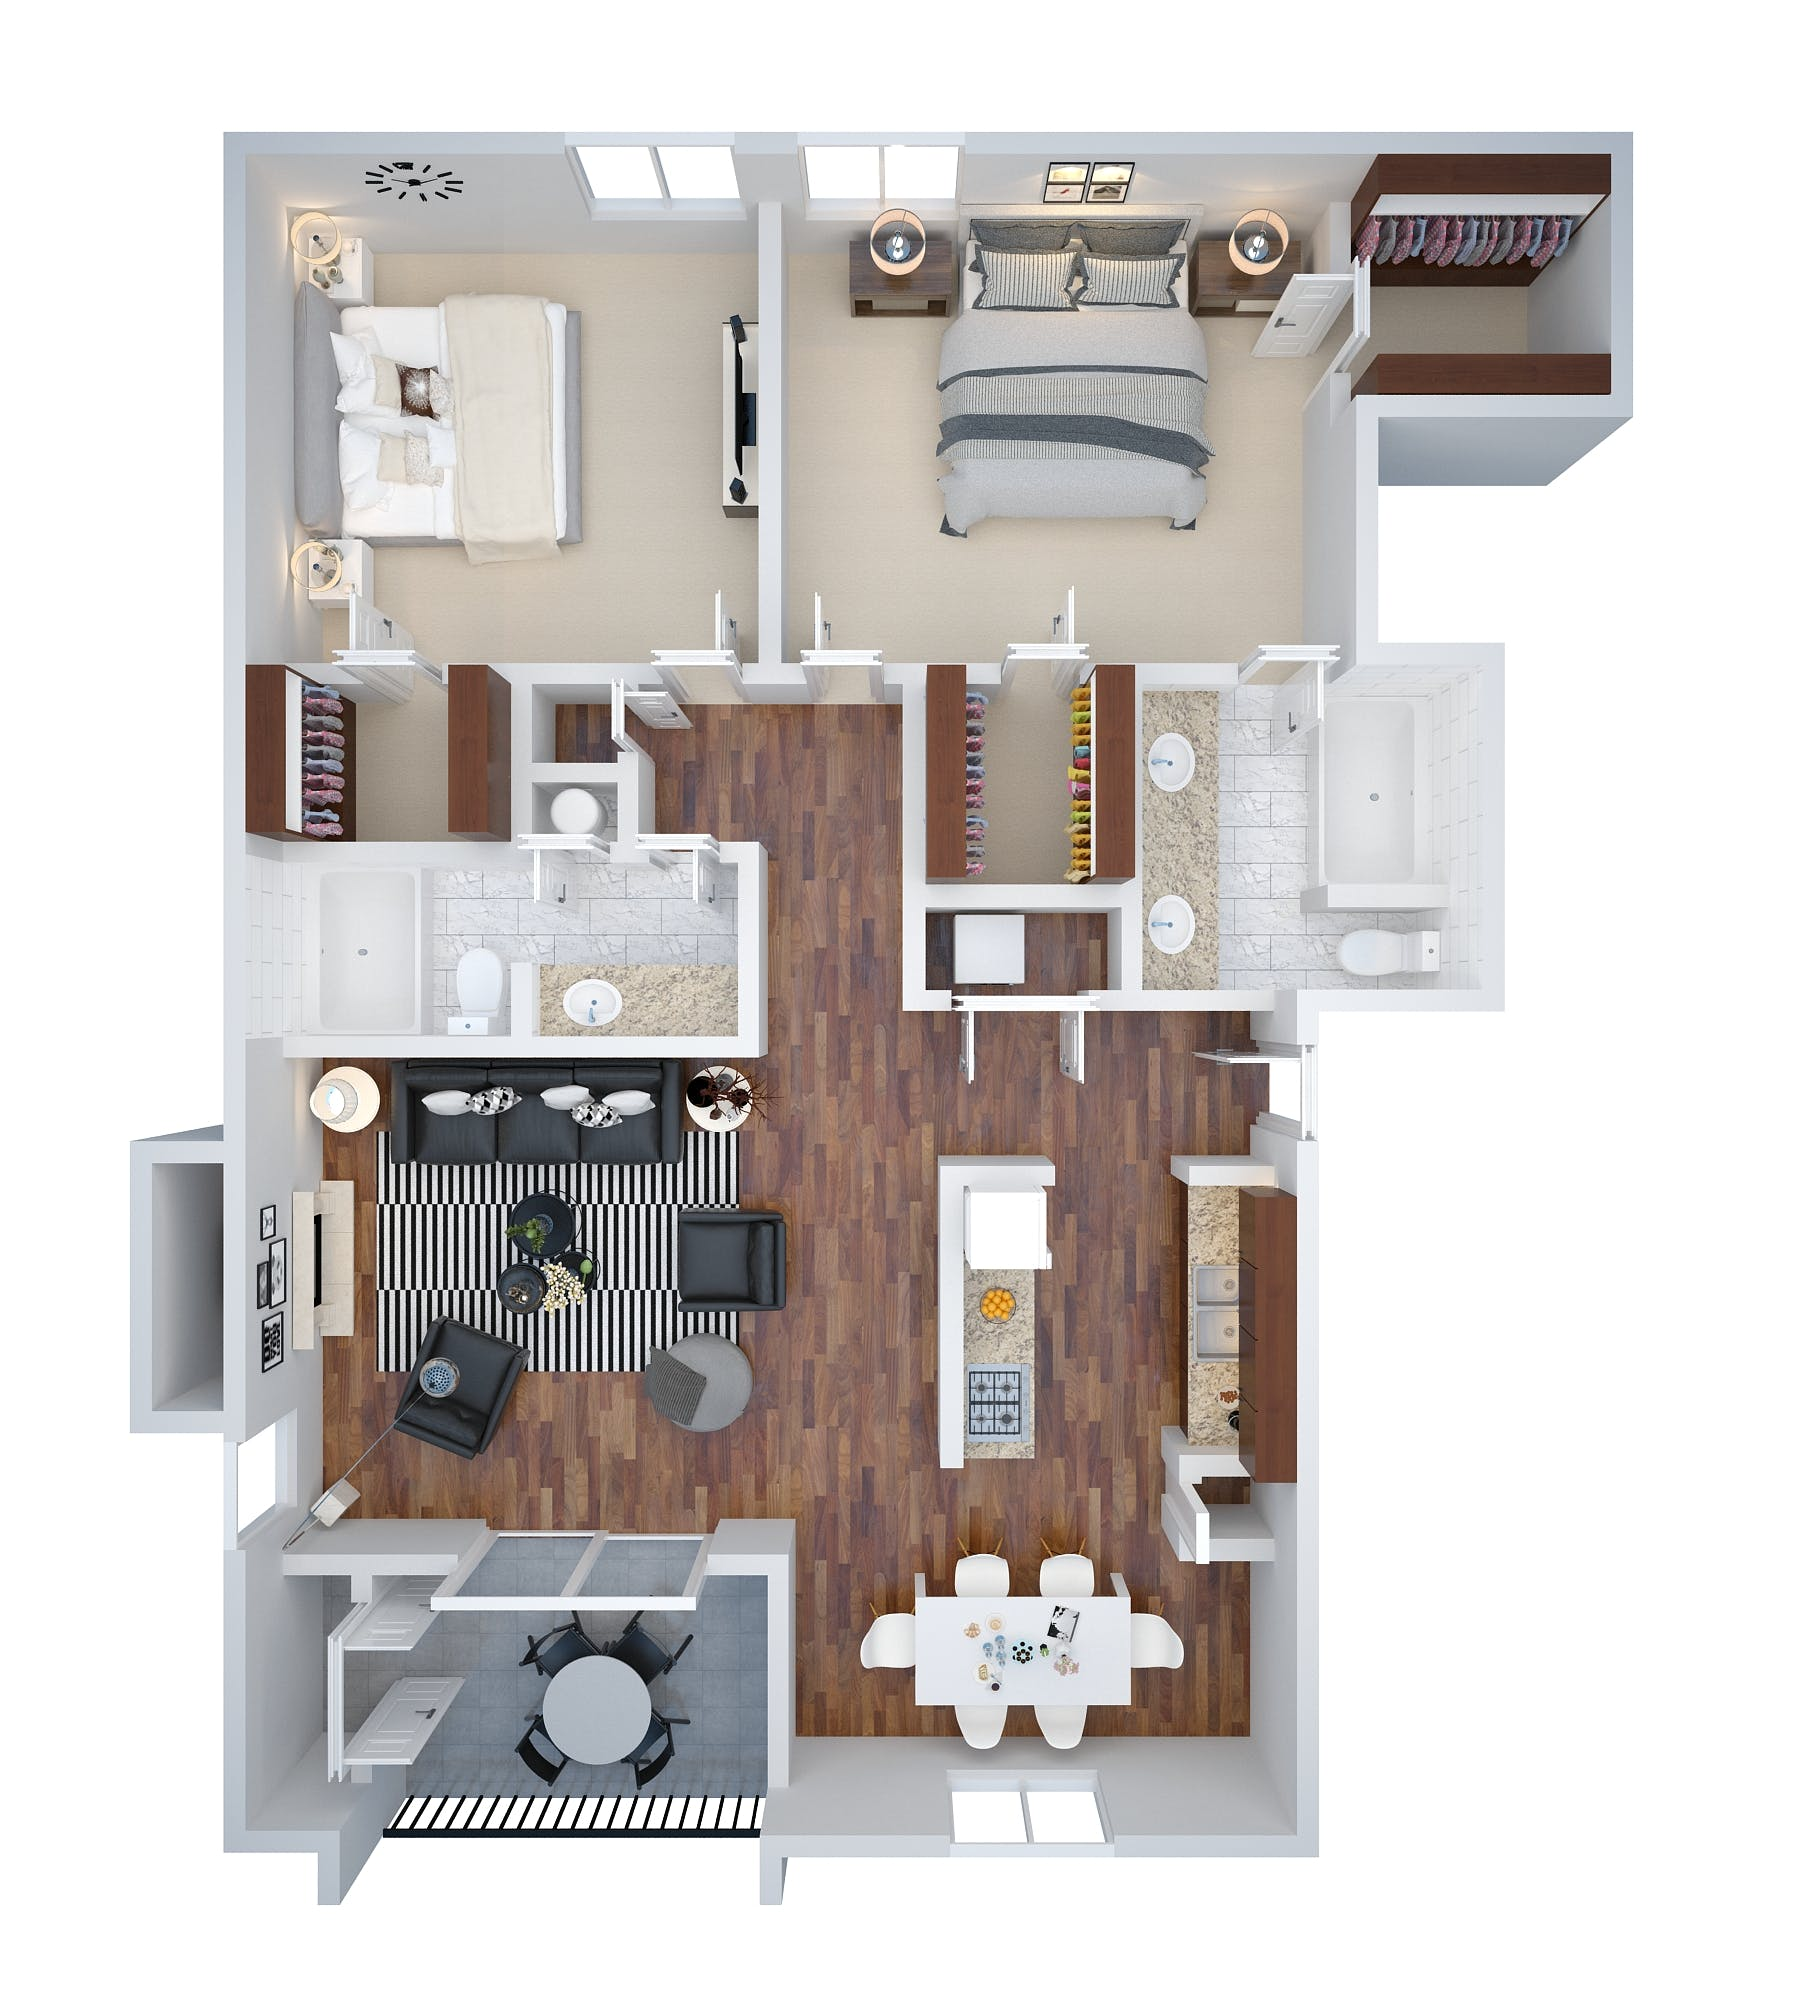 Architectural 3d Floor Plan Rendering: Architectural 3D Floor Plan Rendering Services